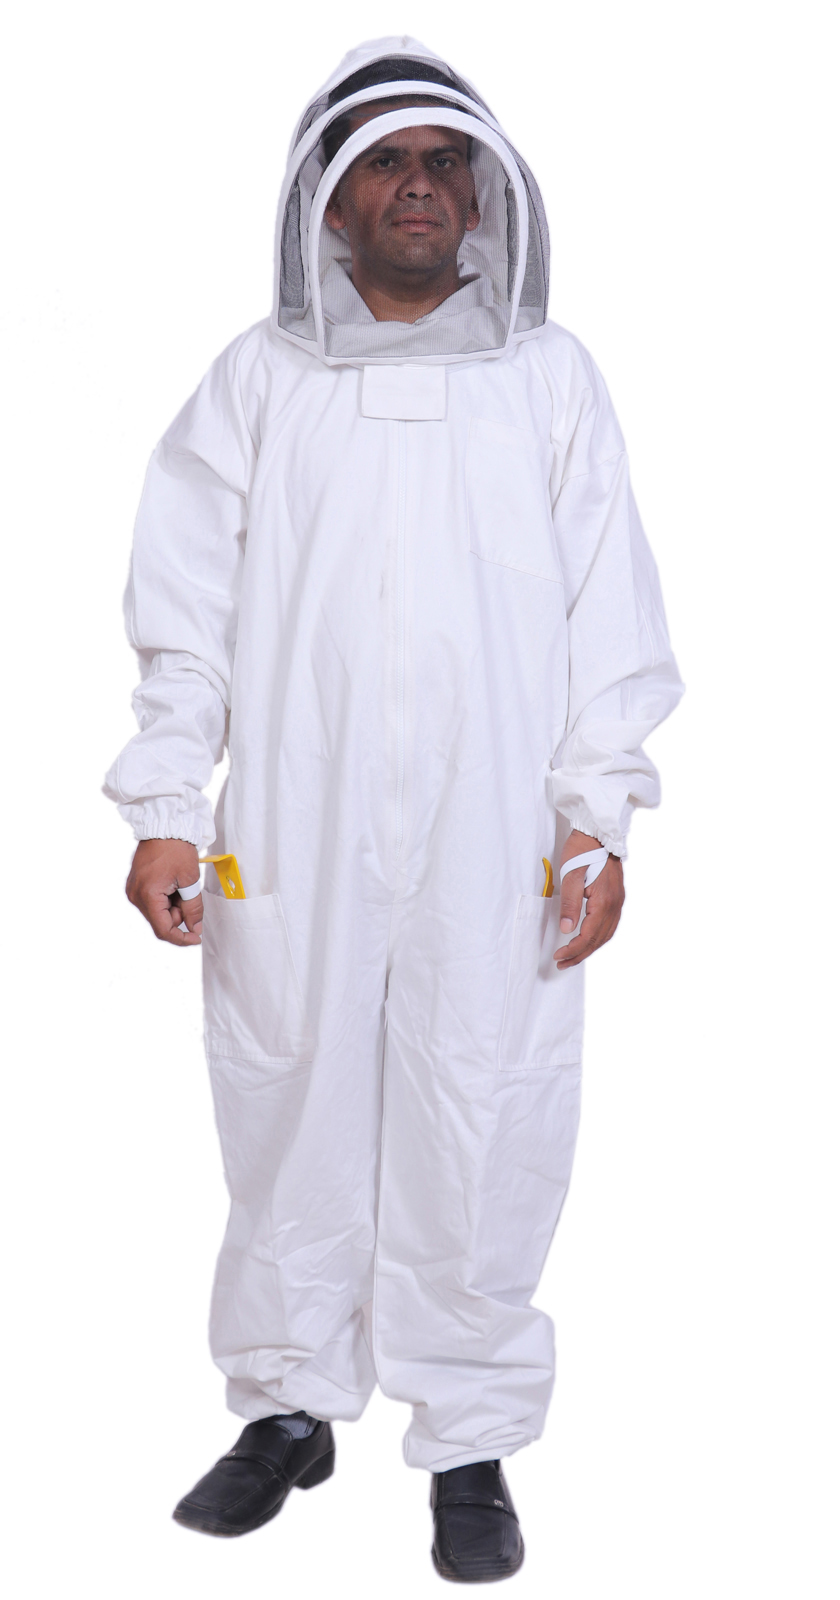 Best Bee Suit For Beekeeping By Beeattire On Sale Free